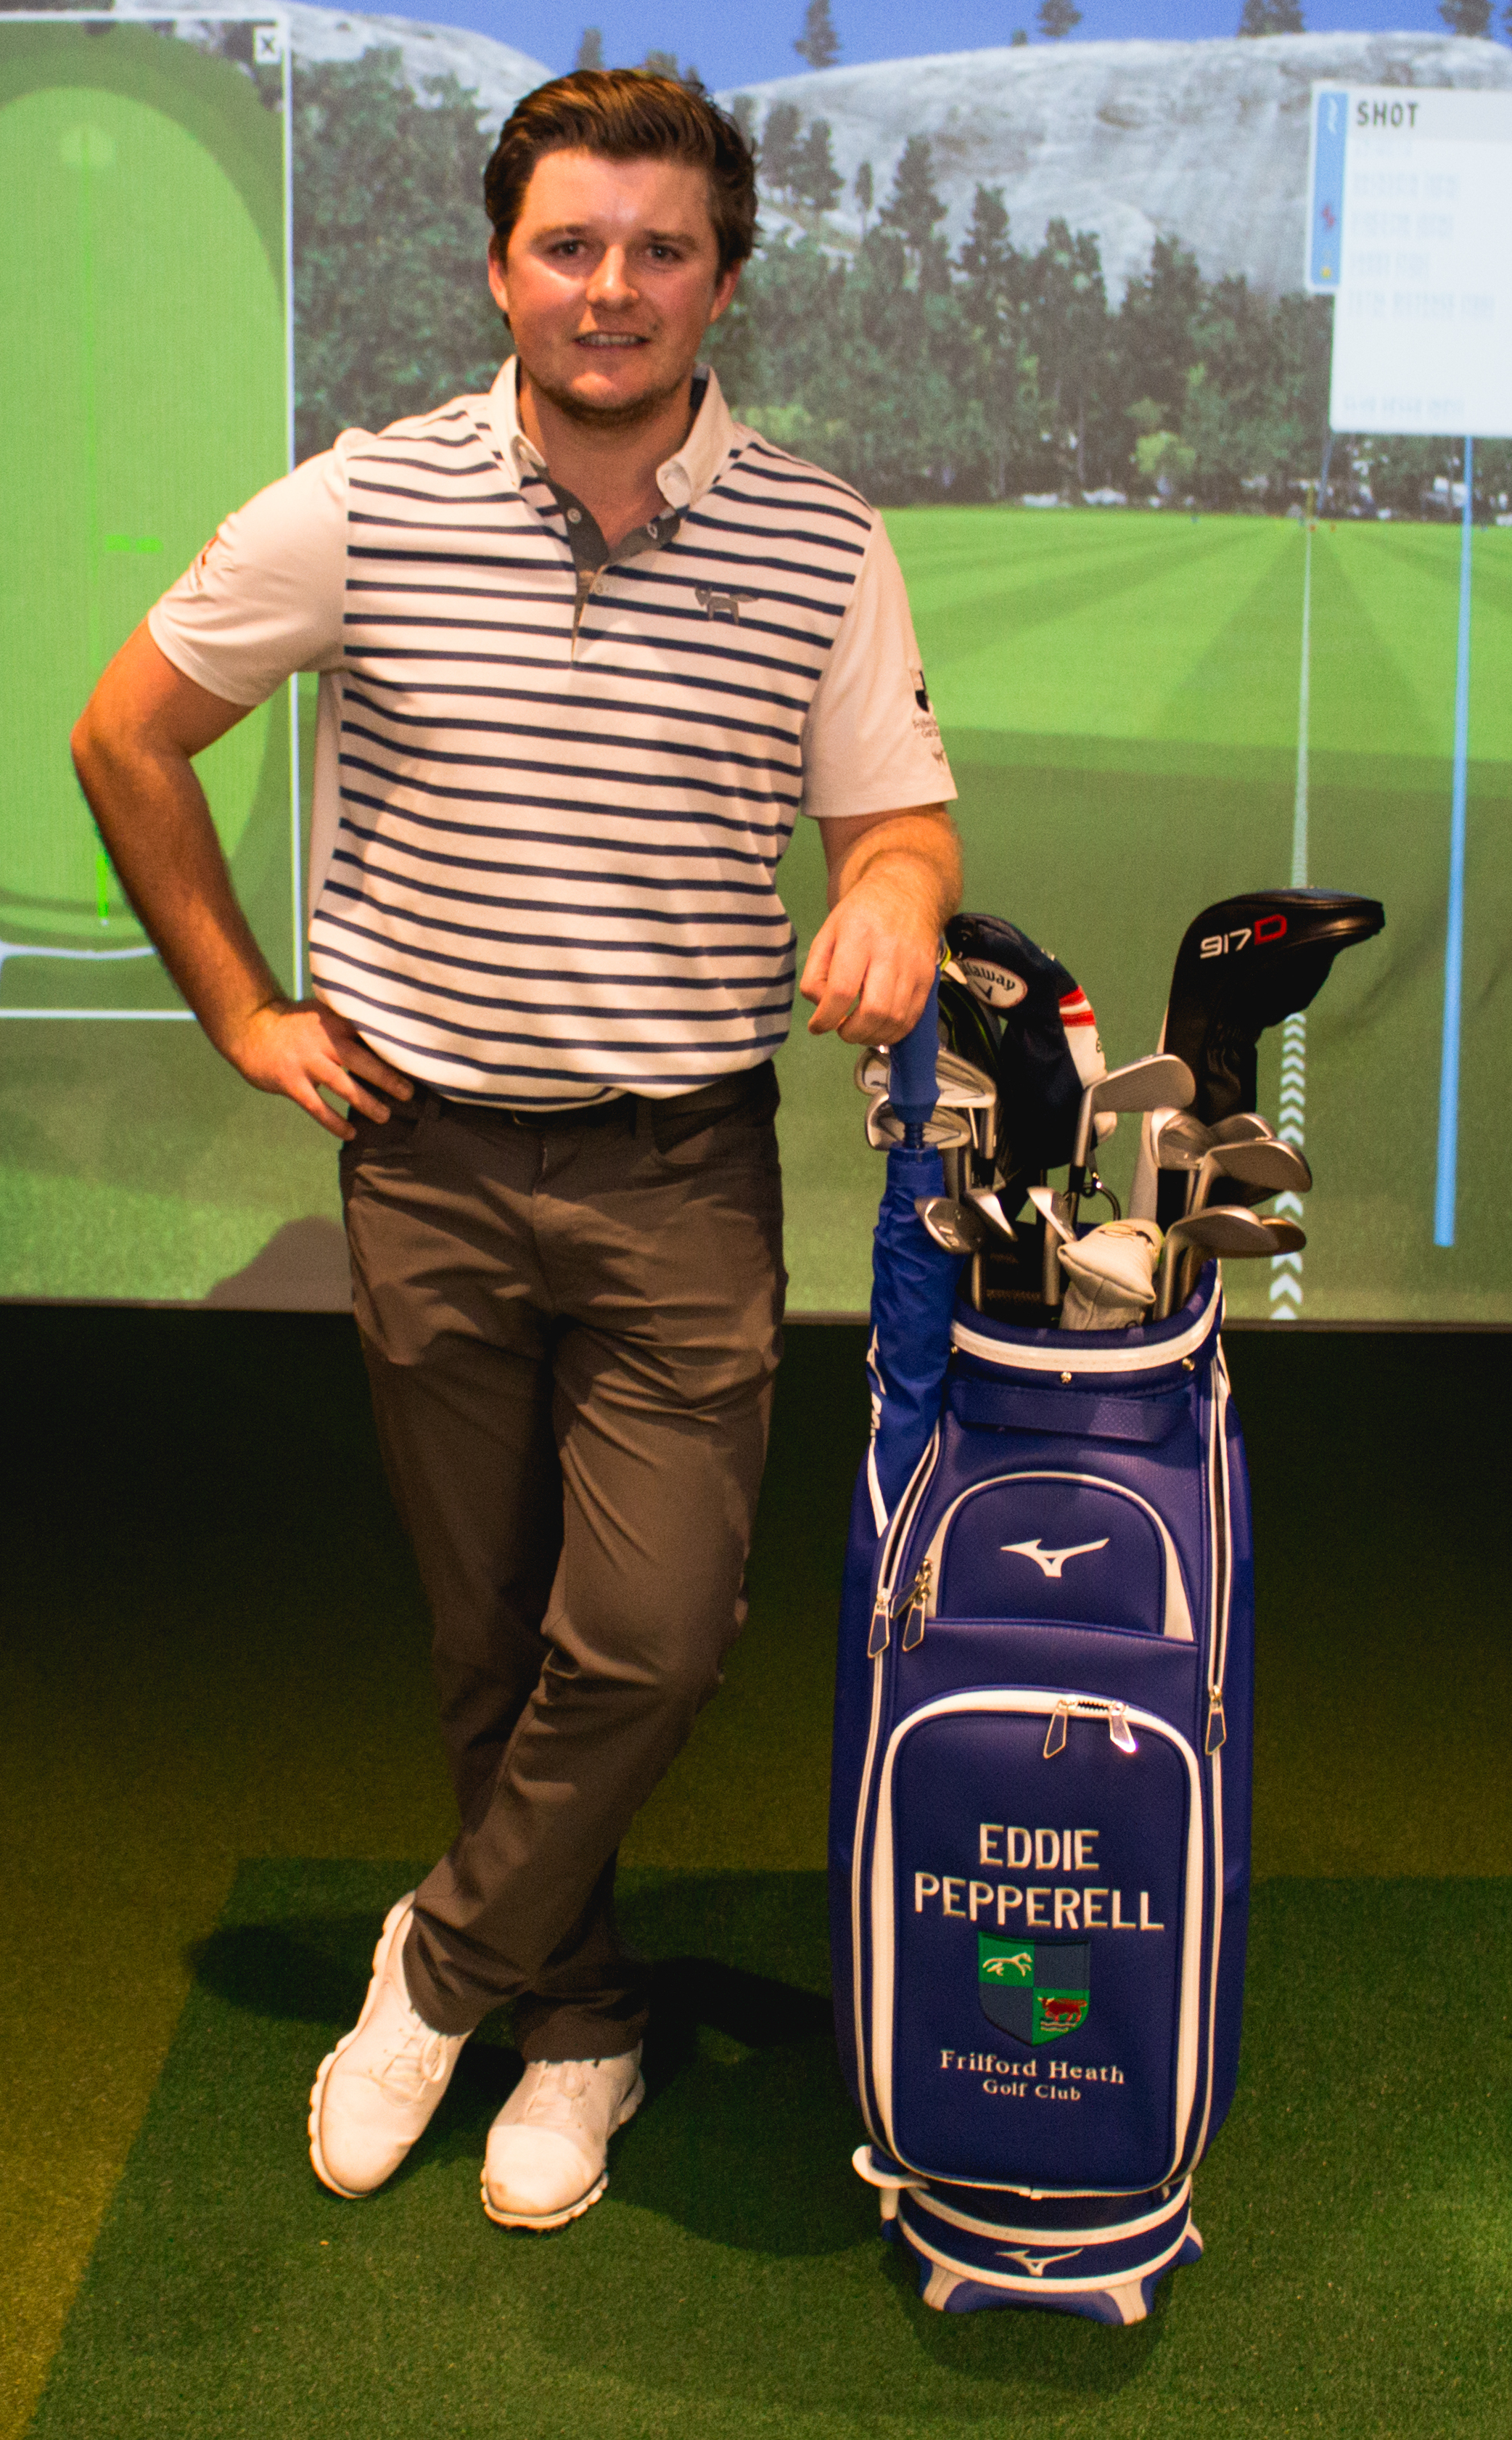 BACK AT HOME: Eddie Pepperell stands in Frilford Heath's new shot simulator, challenging members to beat his drive of 311 yards, before entertaining guests at the club with stories from the European Tour